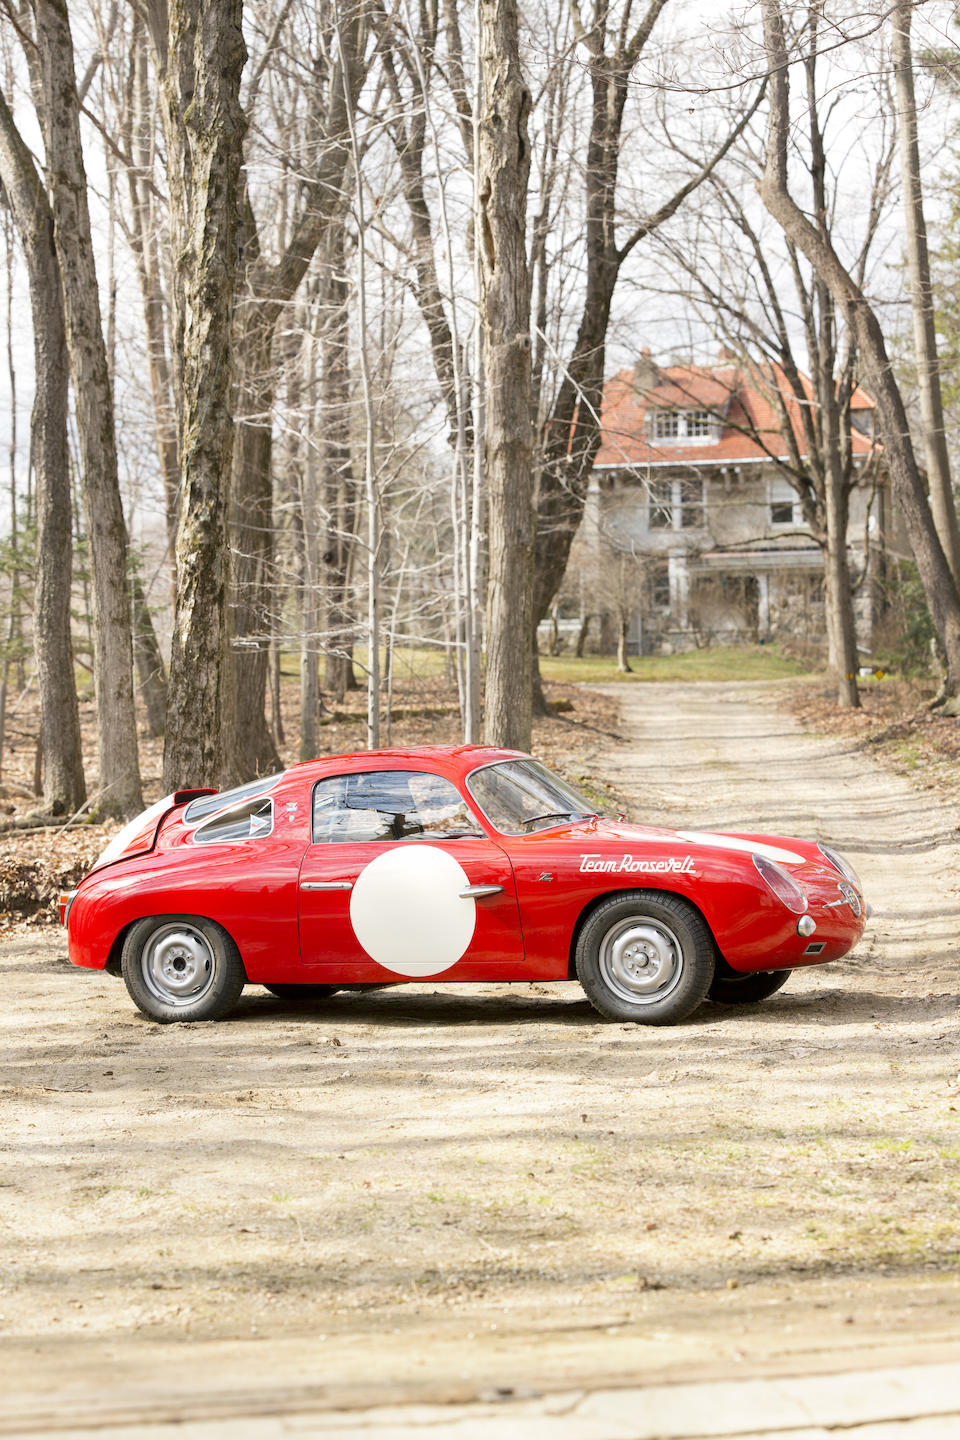 <i>Ex-Team Roosevelt</i><BR /><B>1959 FIAT-Abarth 750 Record Monza Bialbero Coup&#233;<BR />Coachwork by Carrozzeria Zagato</B><BR />Chassis no. 550486<BR />Engine no. 600319 (its matching numbers unit with car, see text)